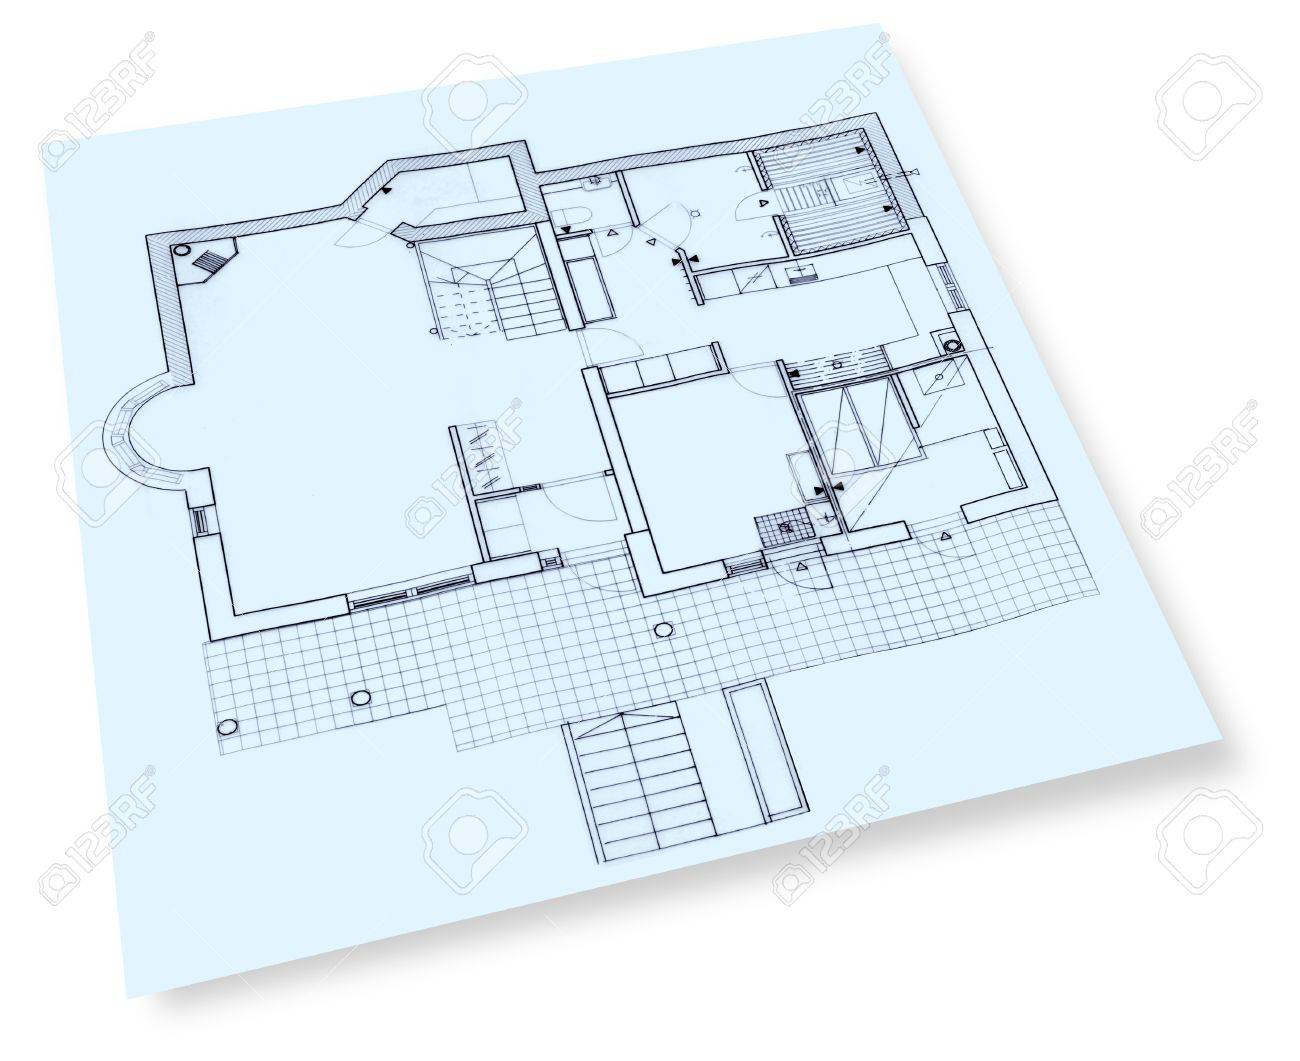 Individual house construction drawings blueprint stock photo individual house construction drawings blueprint stock photo 13995079 malvernweather Gallery